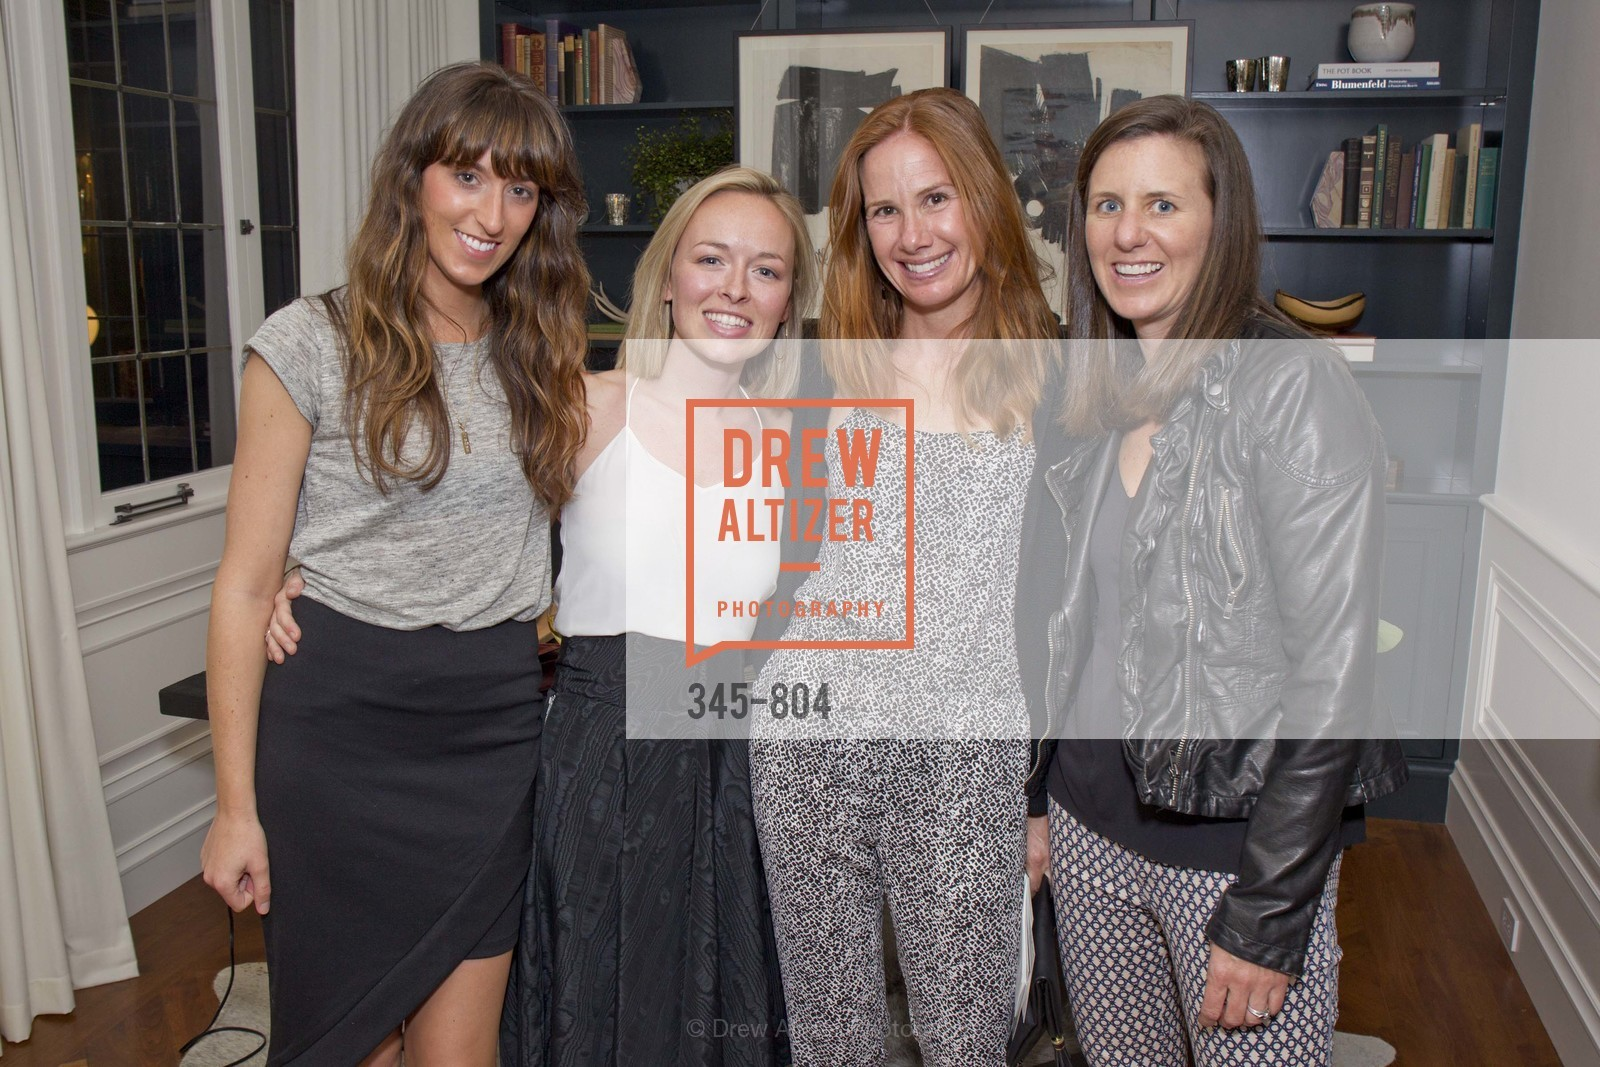 Chelsea Ledell, Brittany Haines, Jessica Donehower, Cindy Winship, San Francisco Decorator Showcase Opening Night Party, US, April 25th, 2015,Drew Altizer, Drew Altizer Photography, full-service agency, private events, San Francisco photographer, photographer california